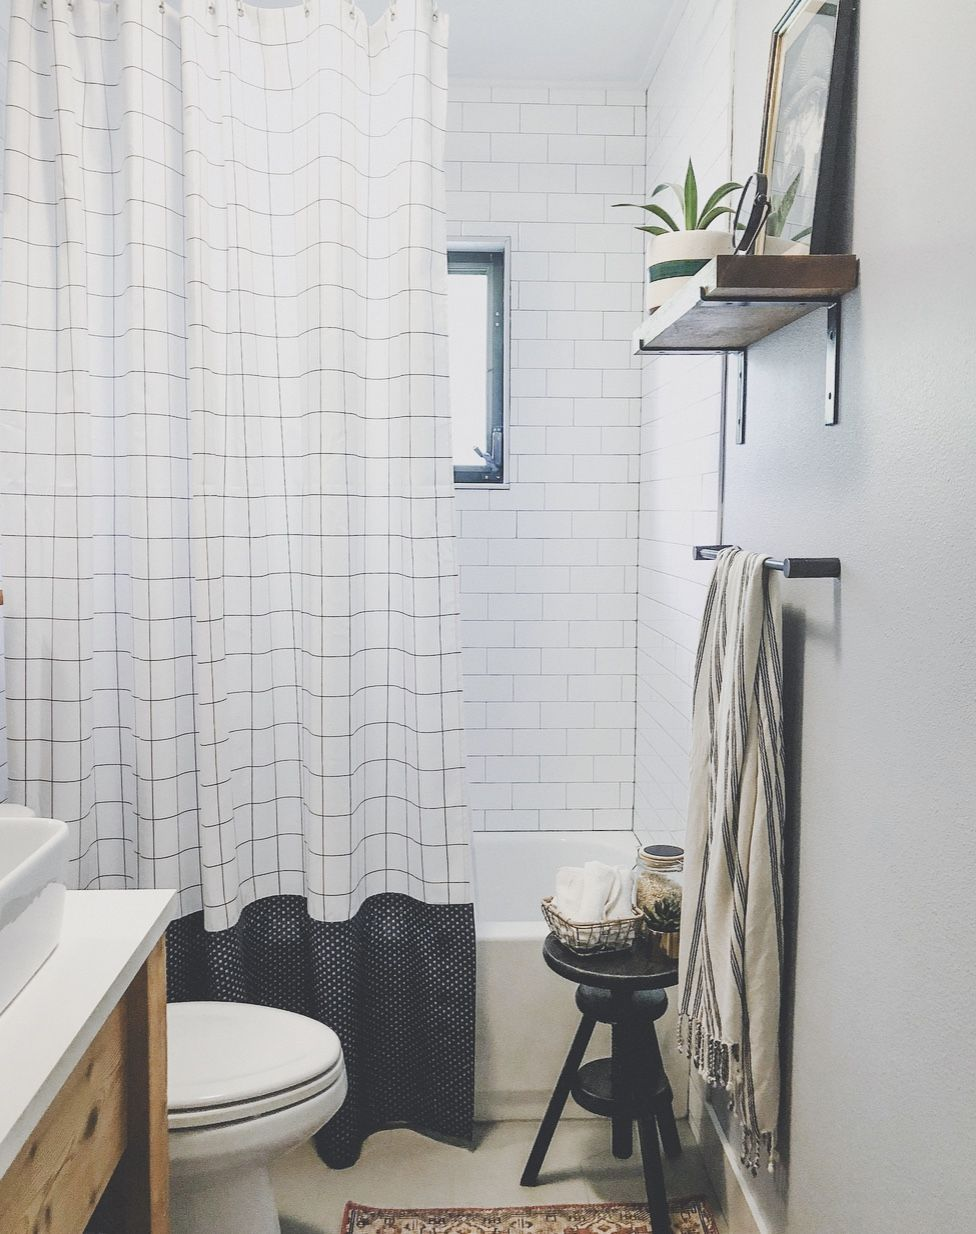 Create A Longer Shower Curtain Without Sewing In 5 Easy Steps